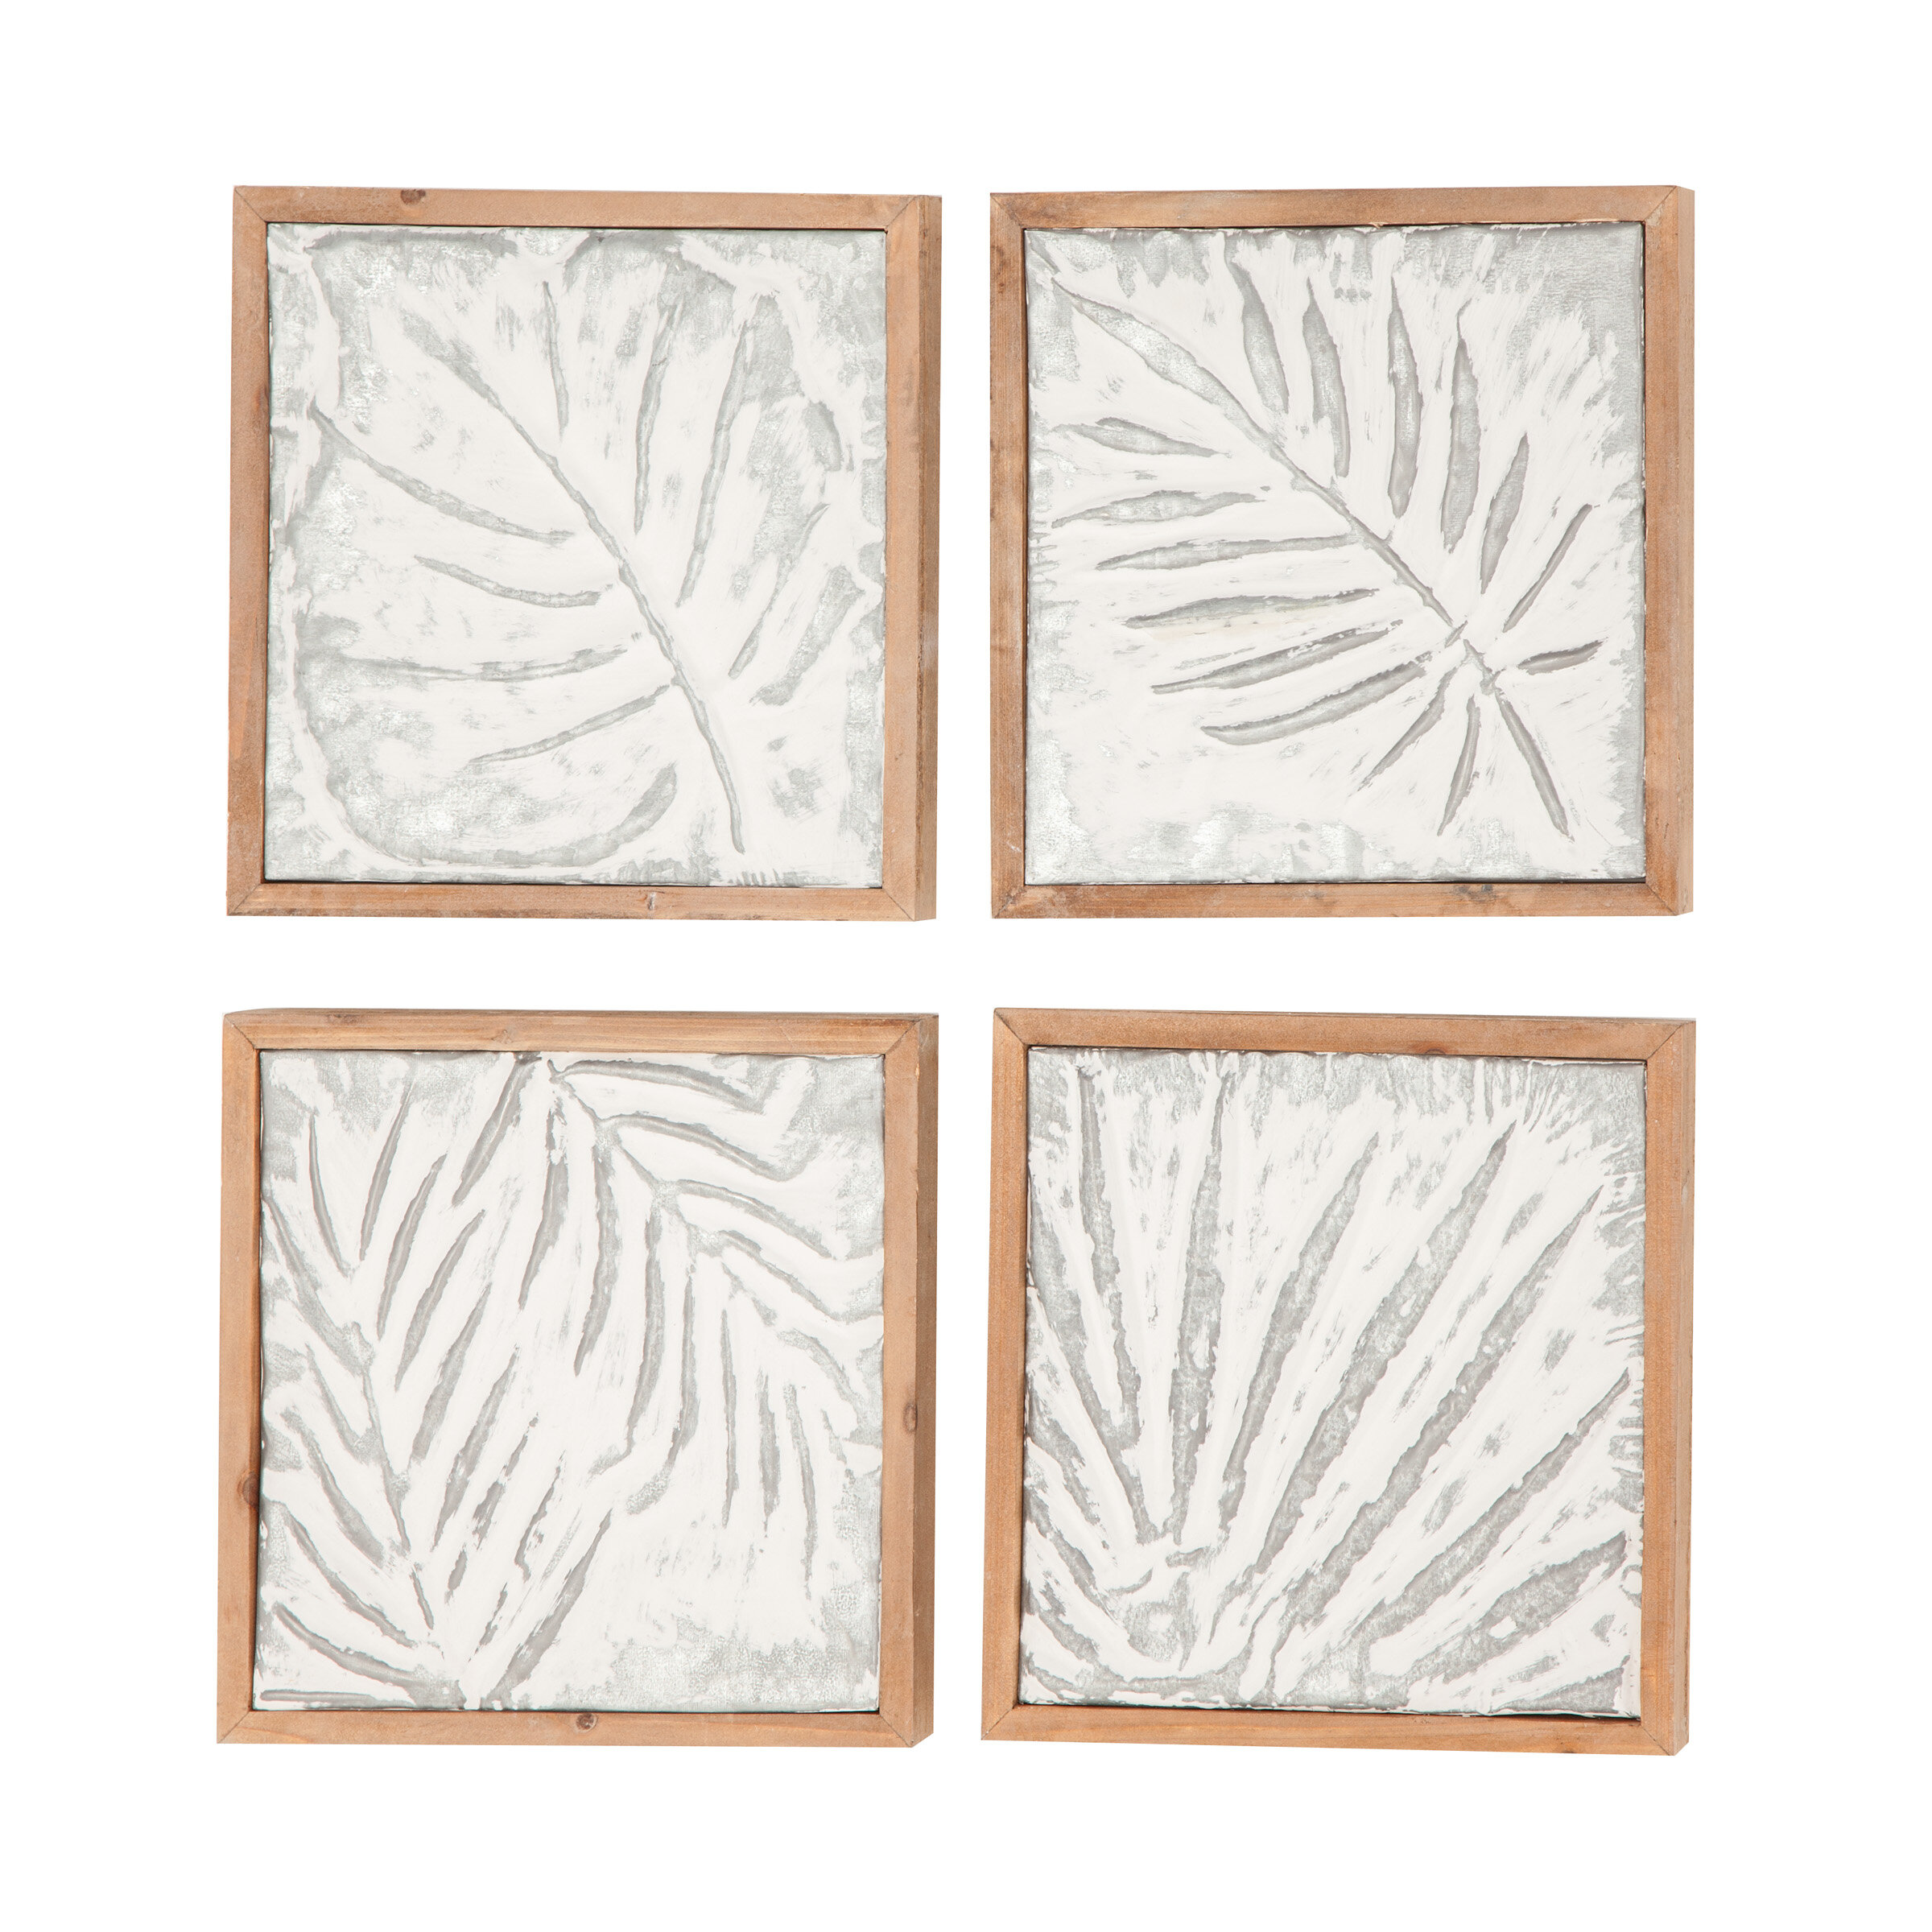 Goodfellow 4 Piece Wood Leaf Wall Decor Set